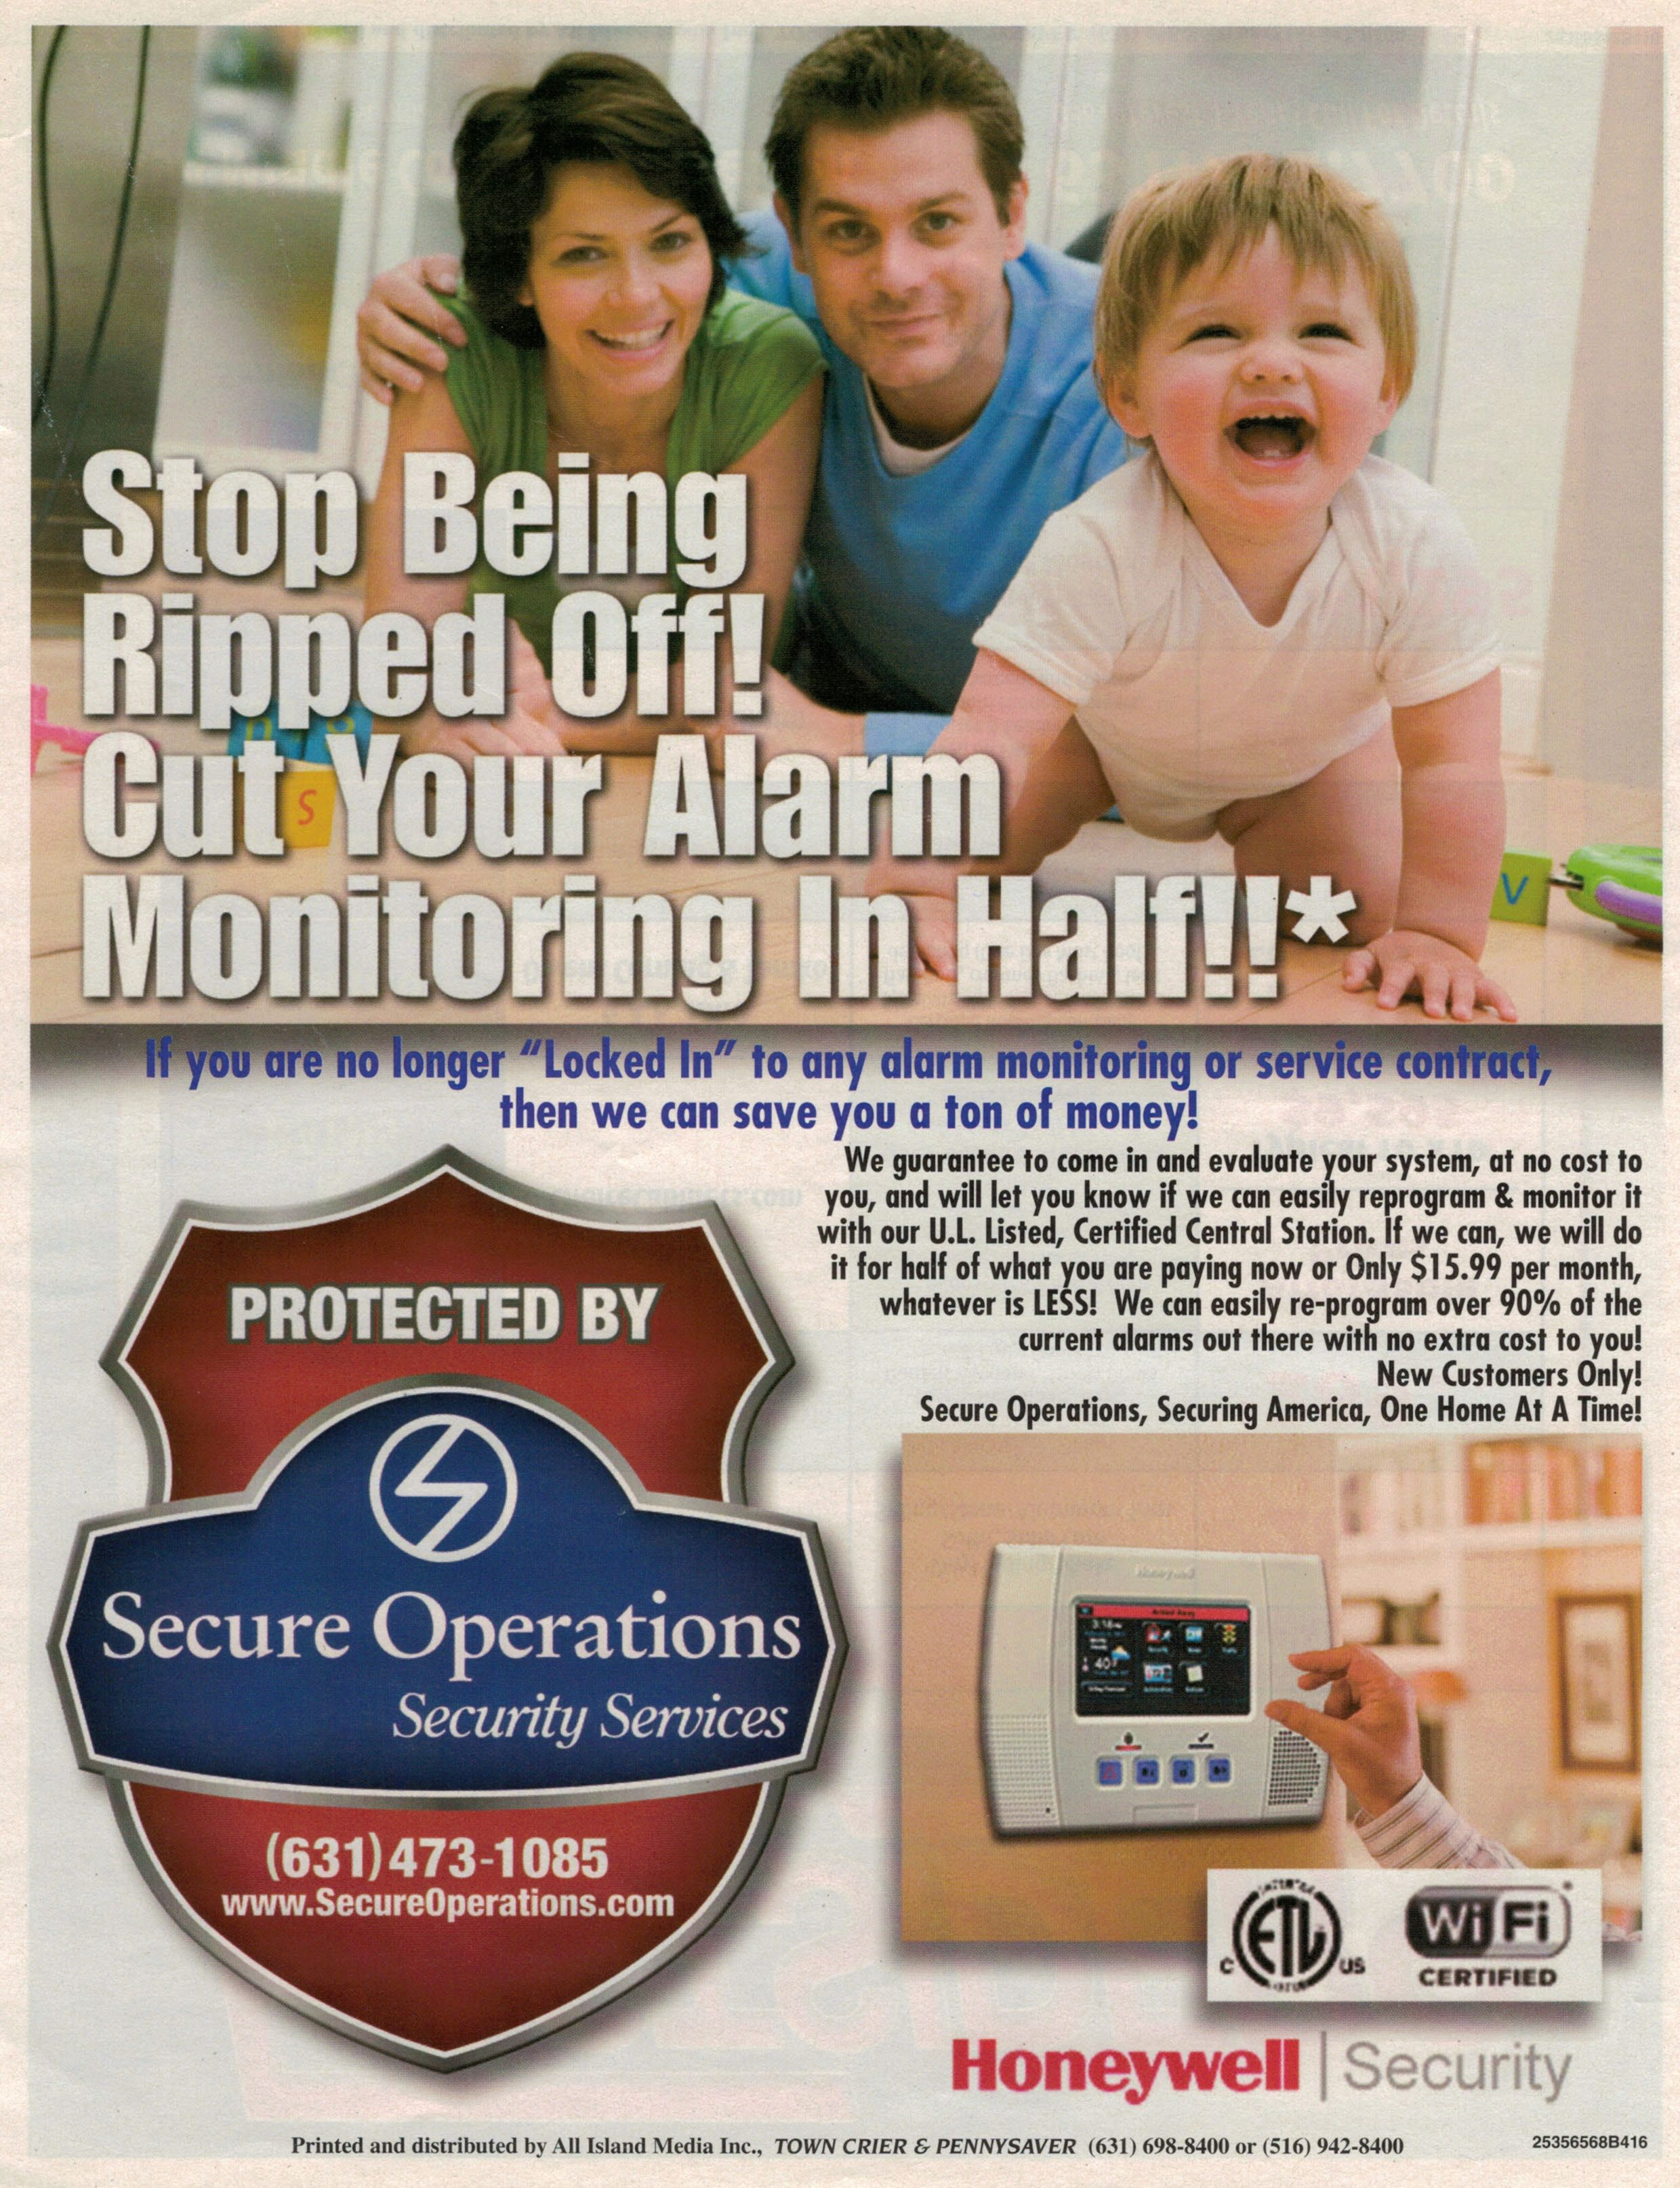 Alarms Security Long Island New York Cctv Secure Operations Securing America One Home At A Time Burglar Fire 631 473 1085